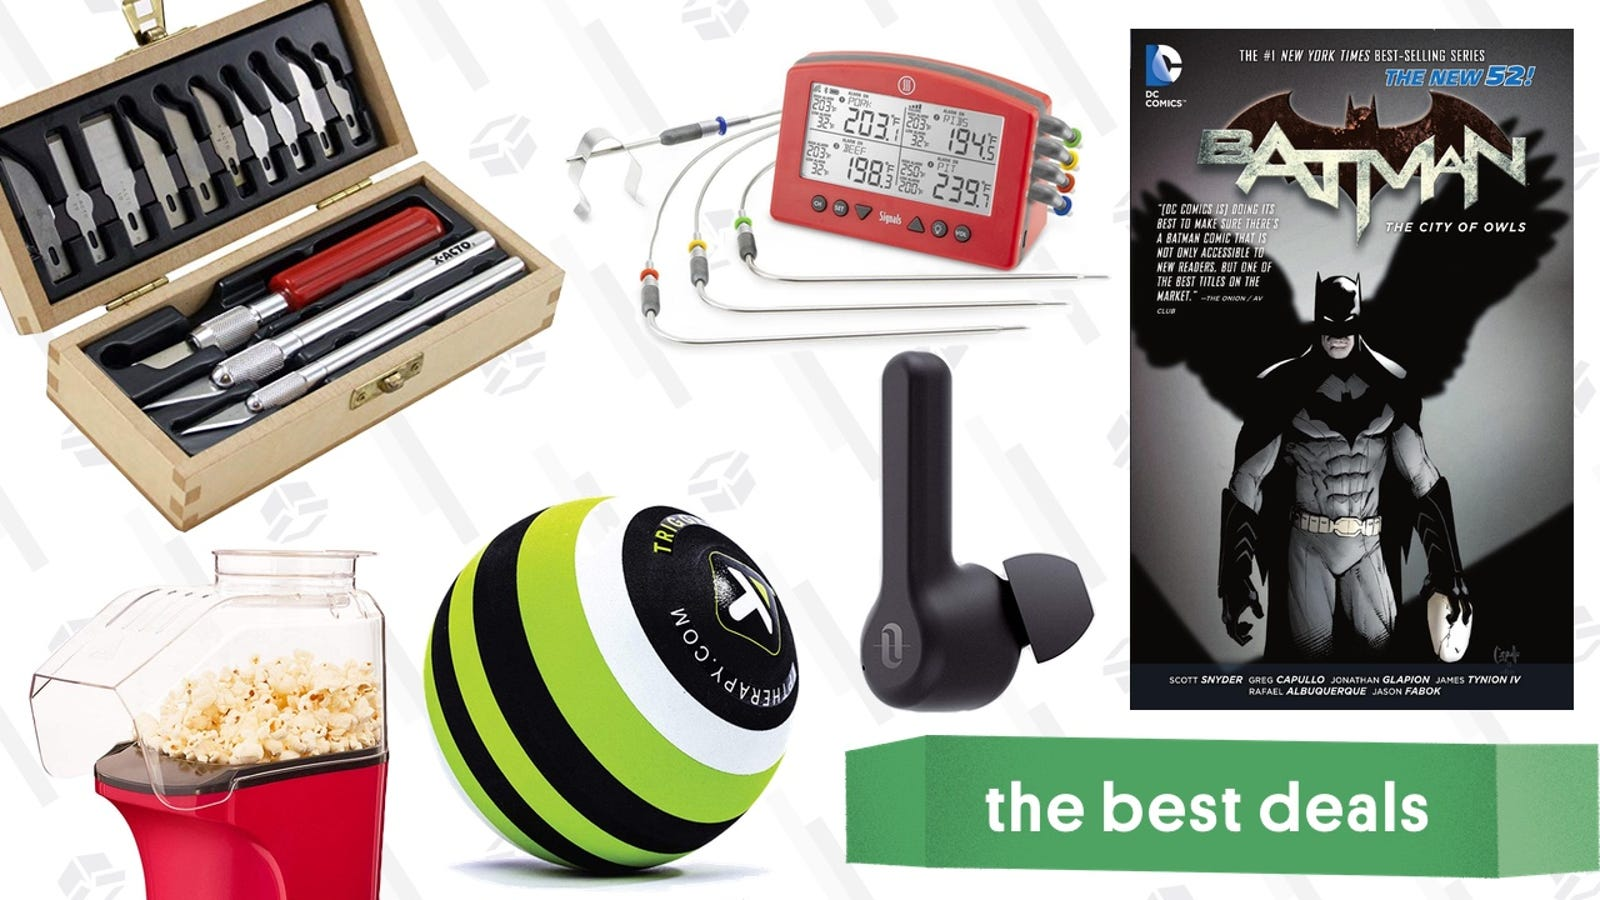 Saturday's Best Deals: True Wireless Headphones, Lawn Tools, Batman Comics, And More